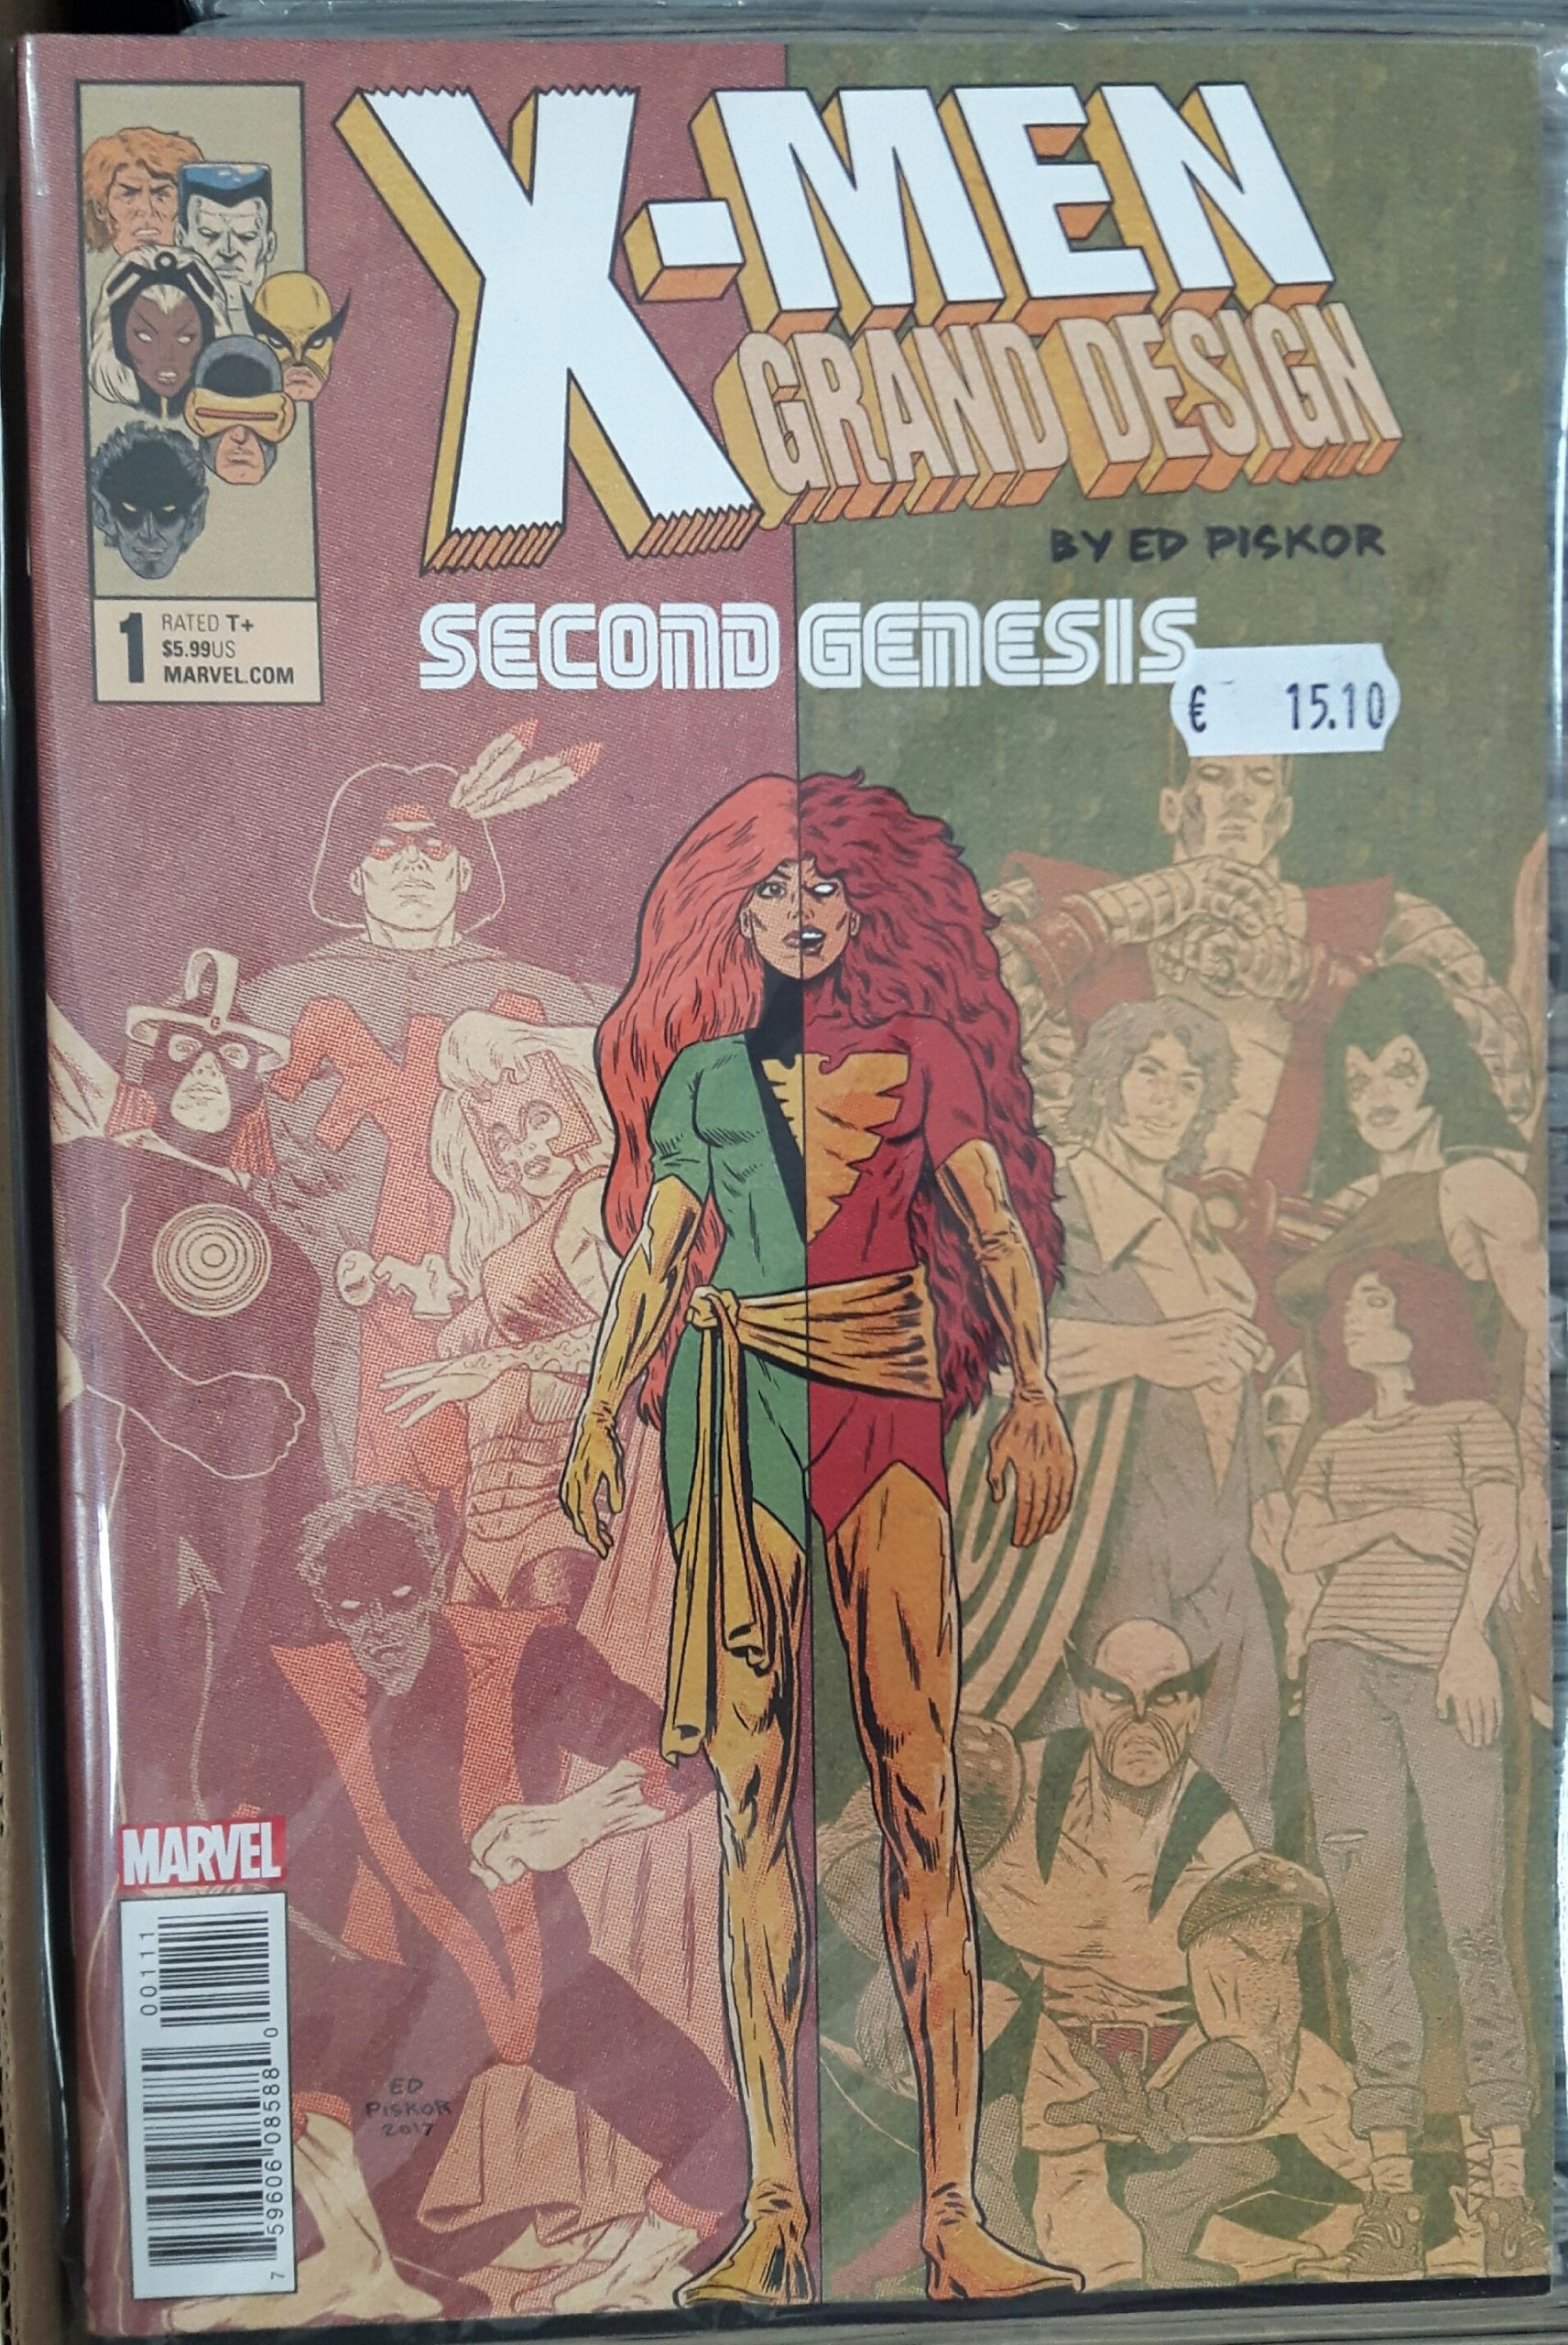 X-MEN GRAND DESIGN: SECOND GENESIS (MS 2)